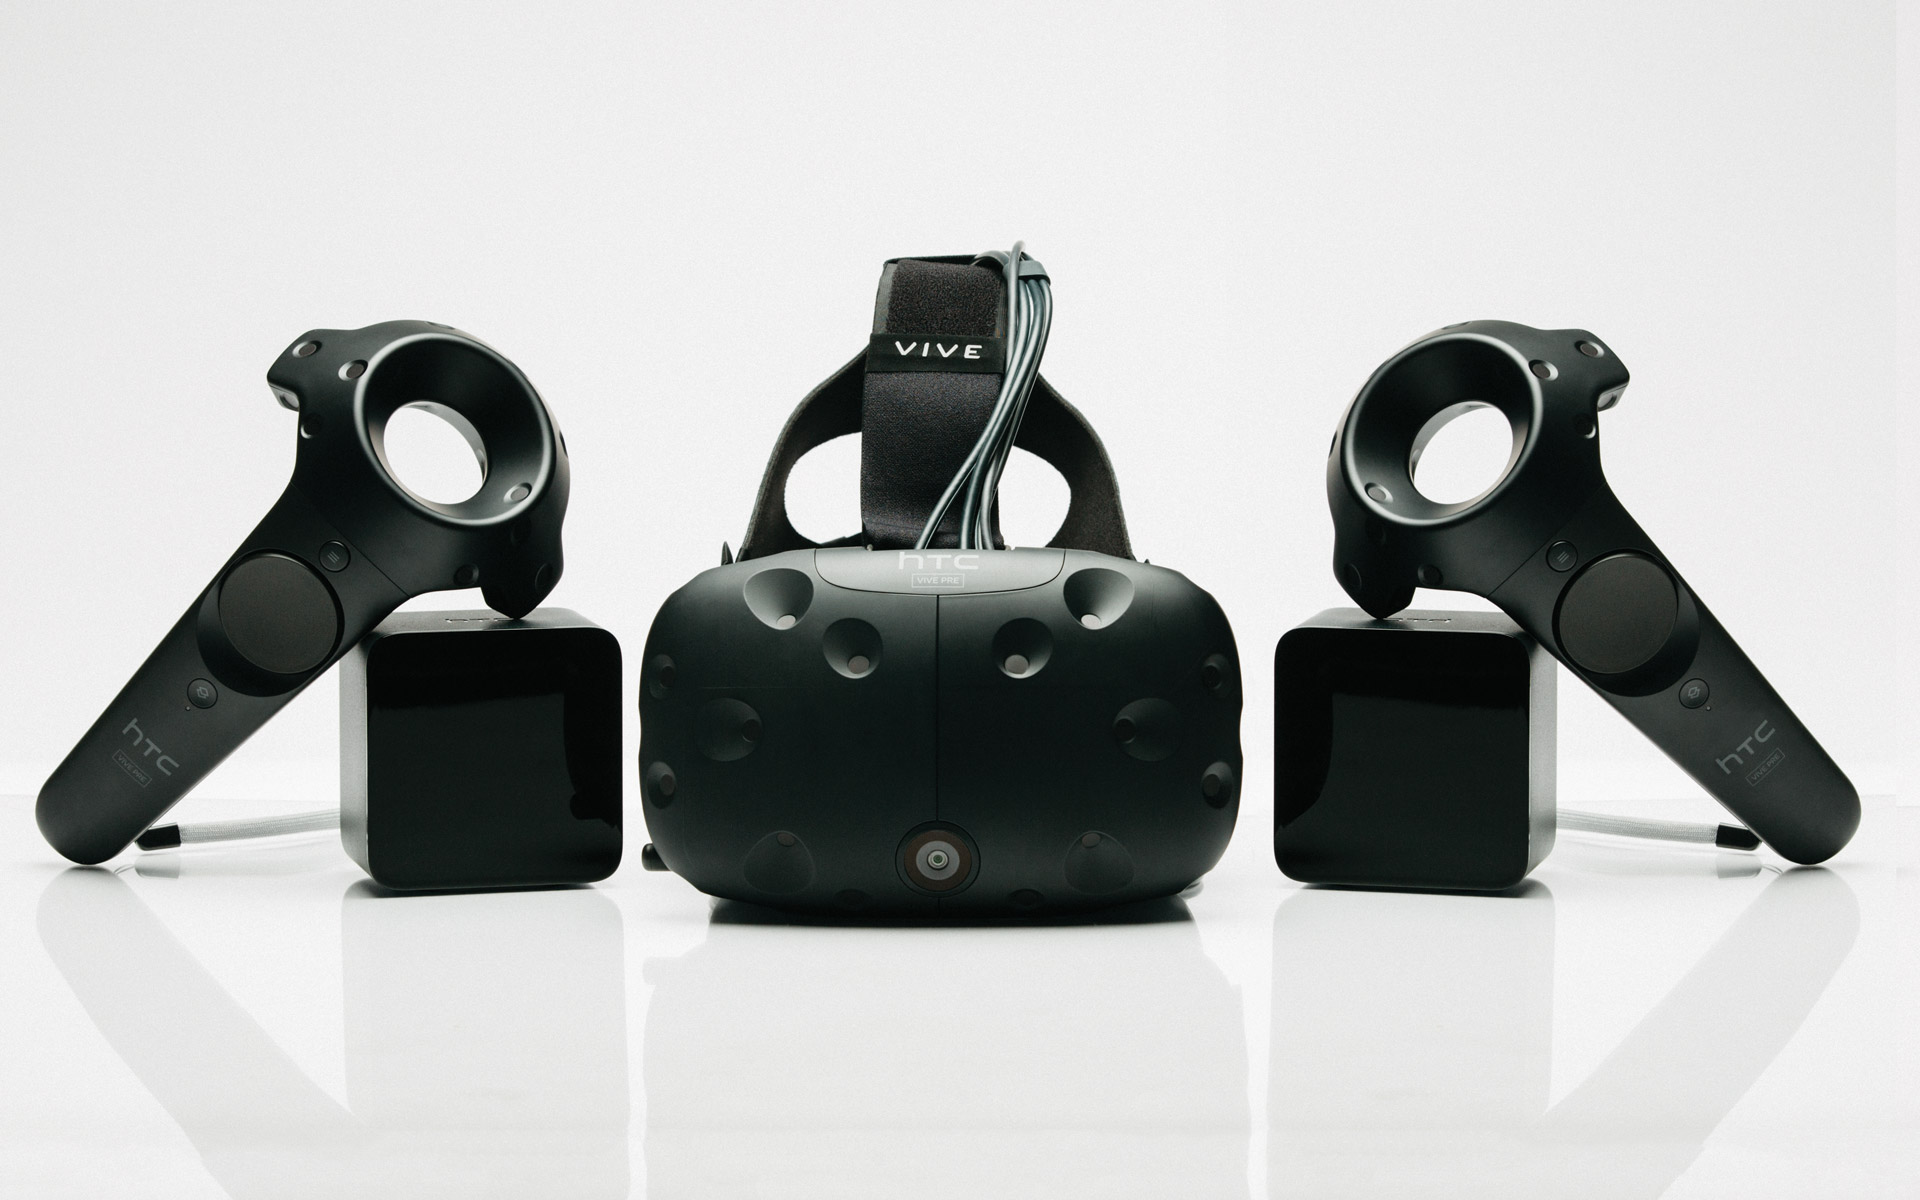 HTC Vive - Reviving the VR revolution?